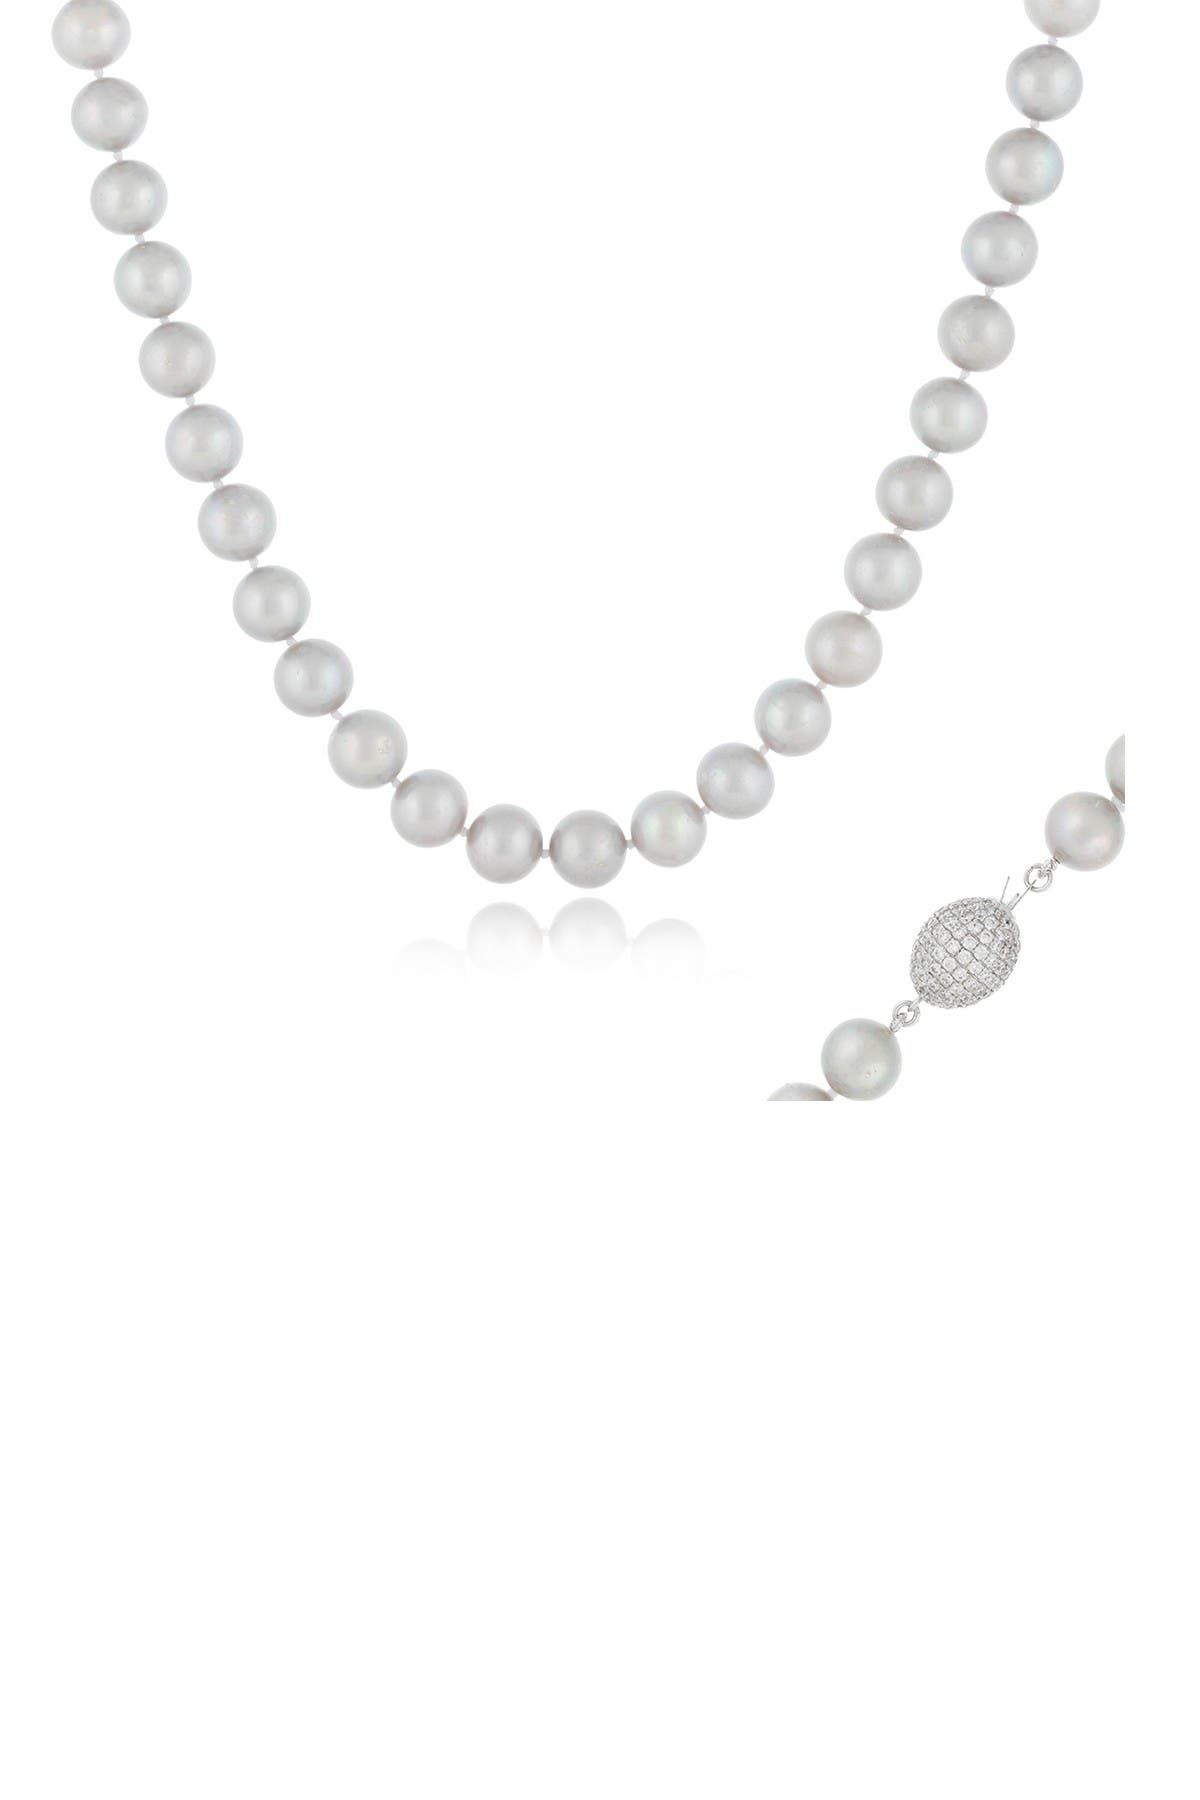 Image of Splendid Pearls Dyed 8-9mm Freshwater Pearl Strand Necklace